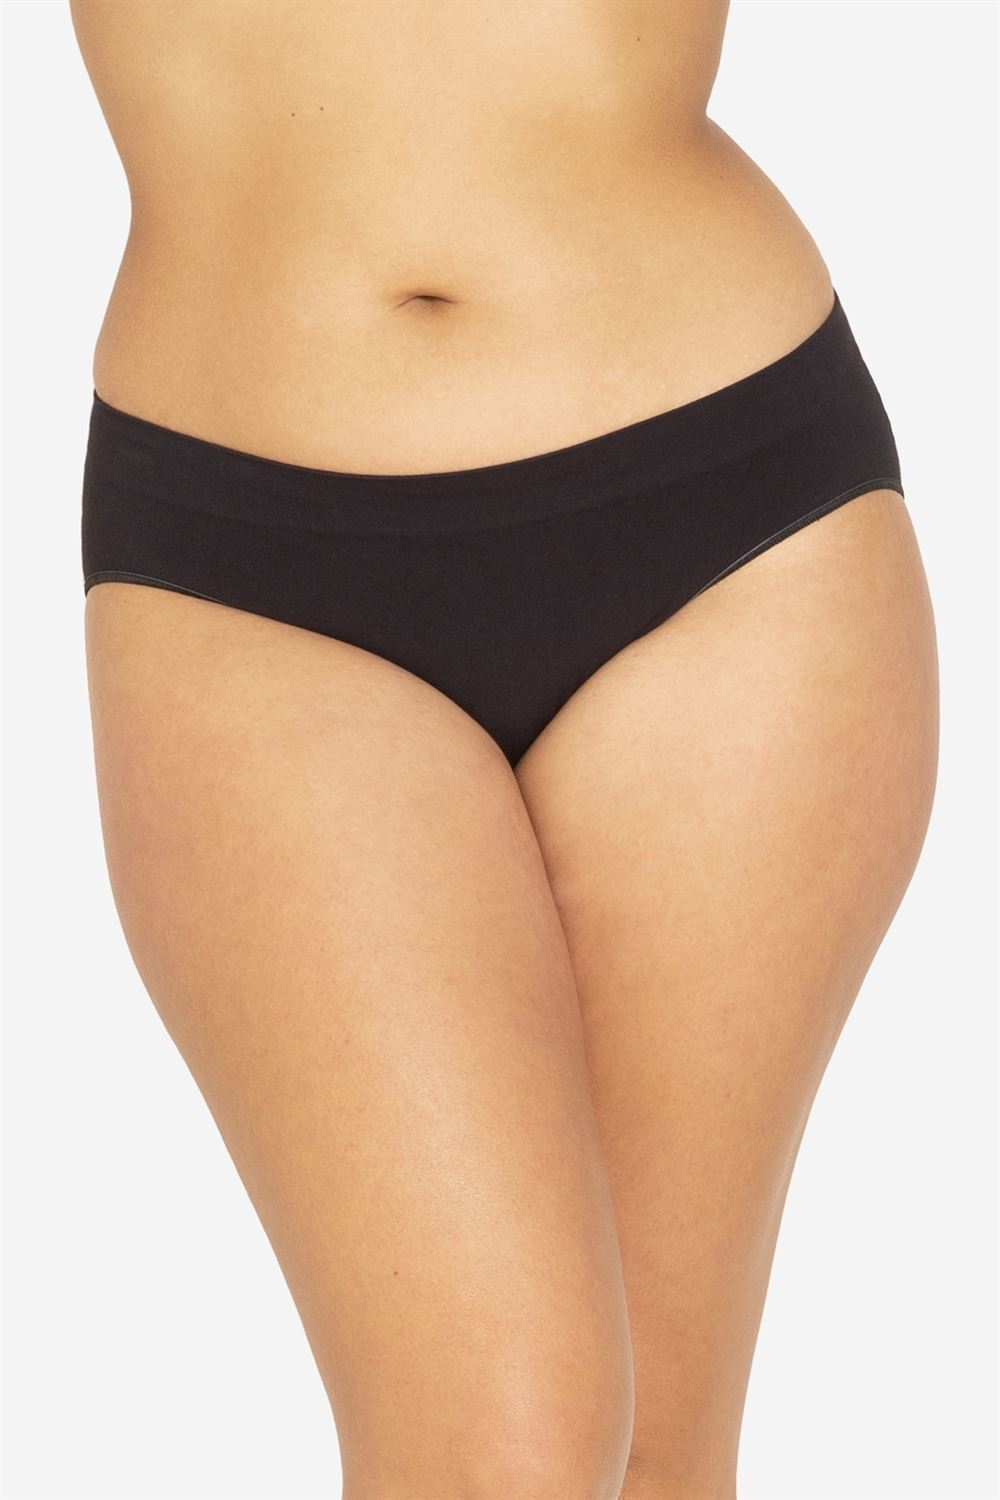 Black maternity panties in soft bamboo fibers - Plus size